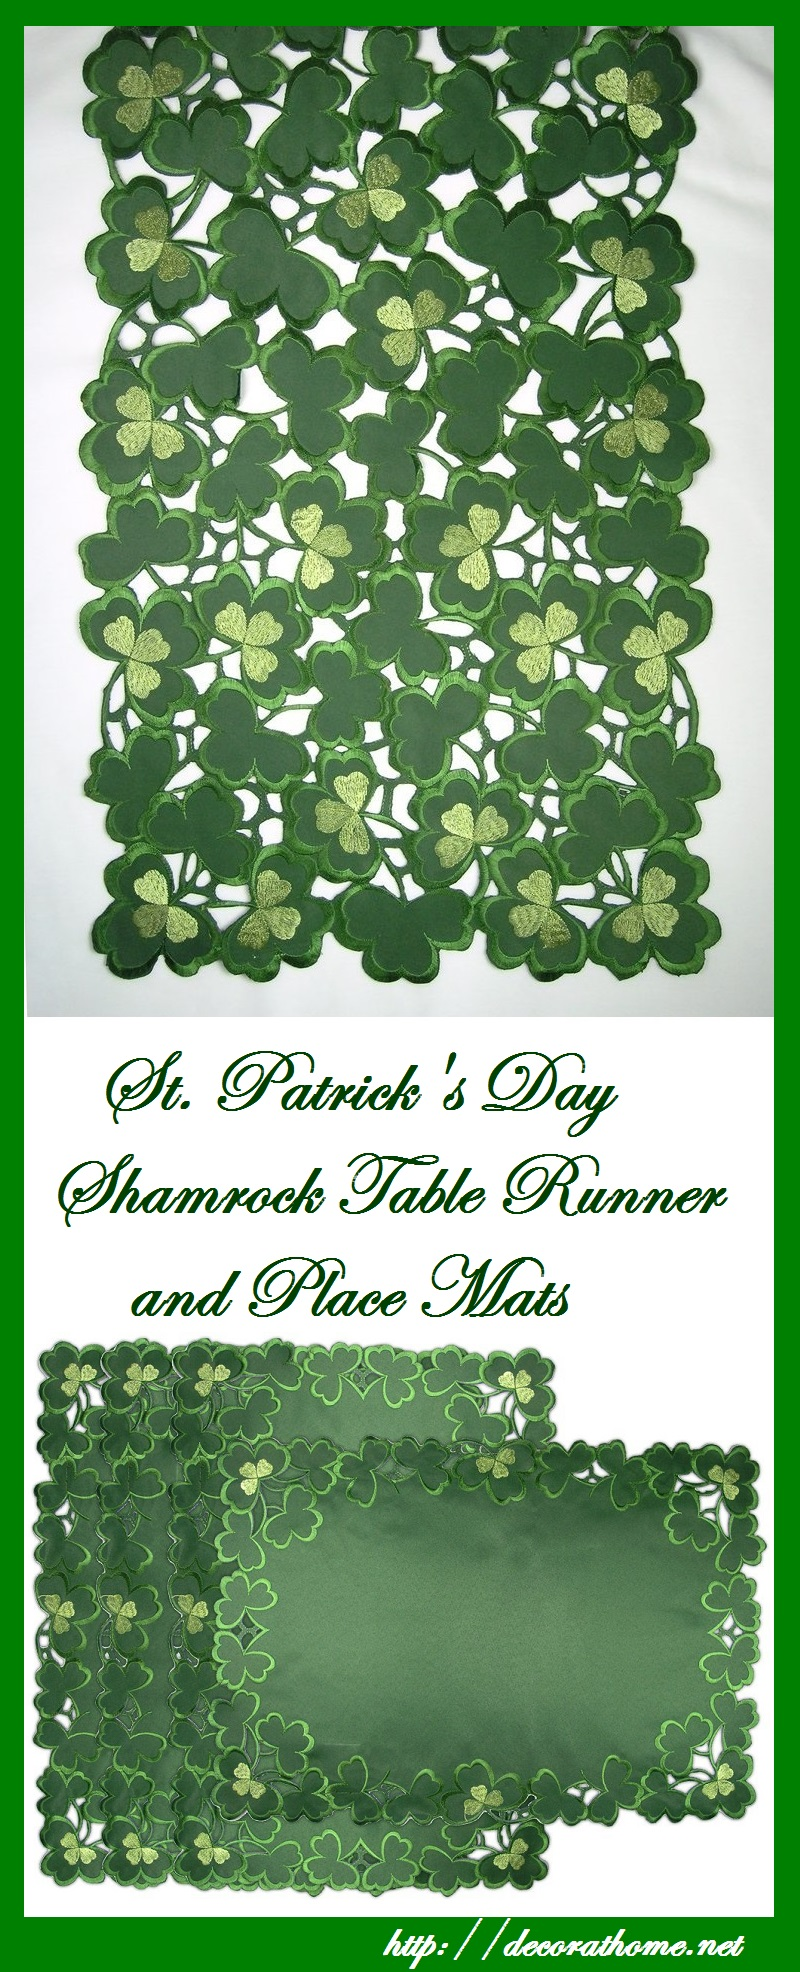 Kitchen Towels And Table Runners for St. Patrick's Day